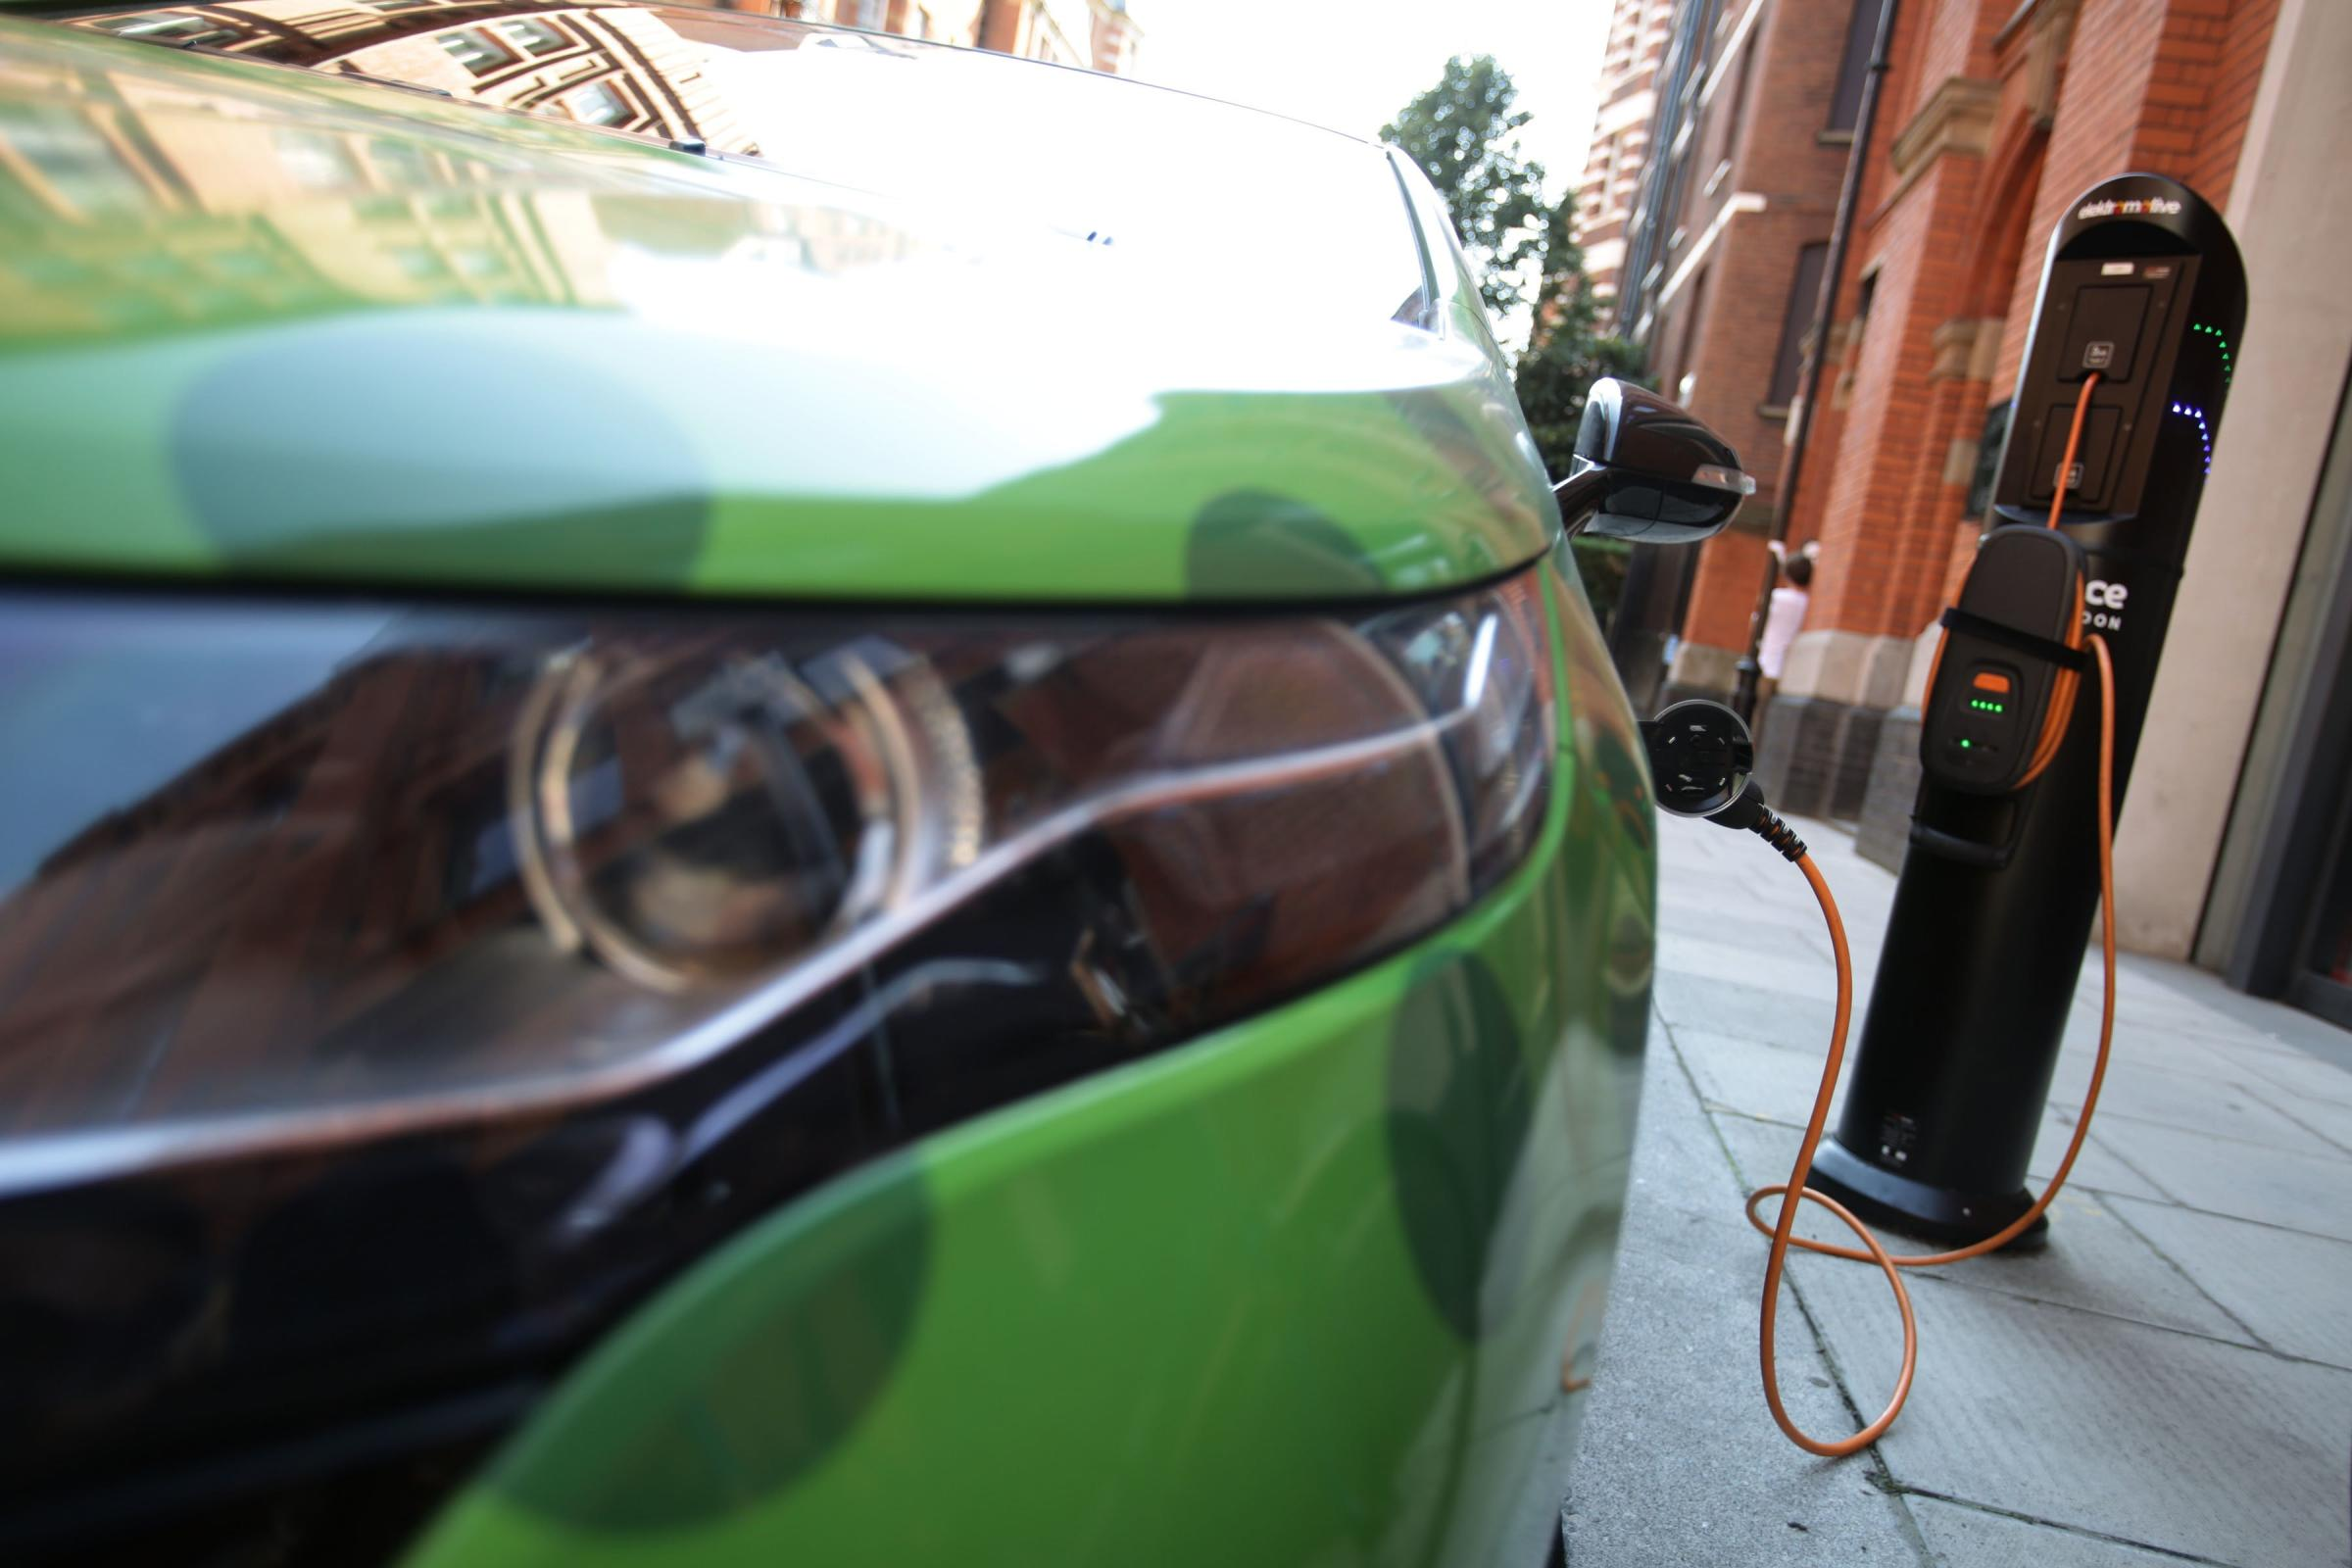 An electric vehicle is plugged into a charging point